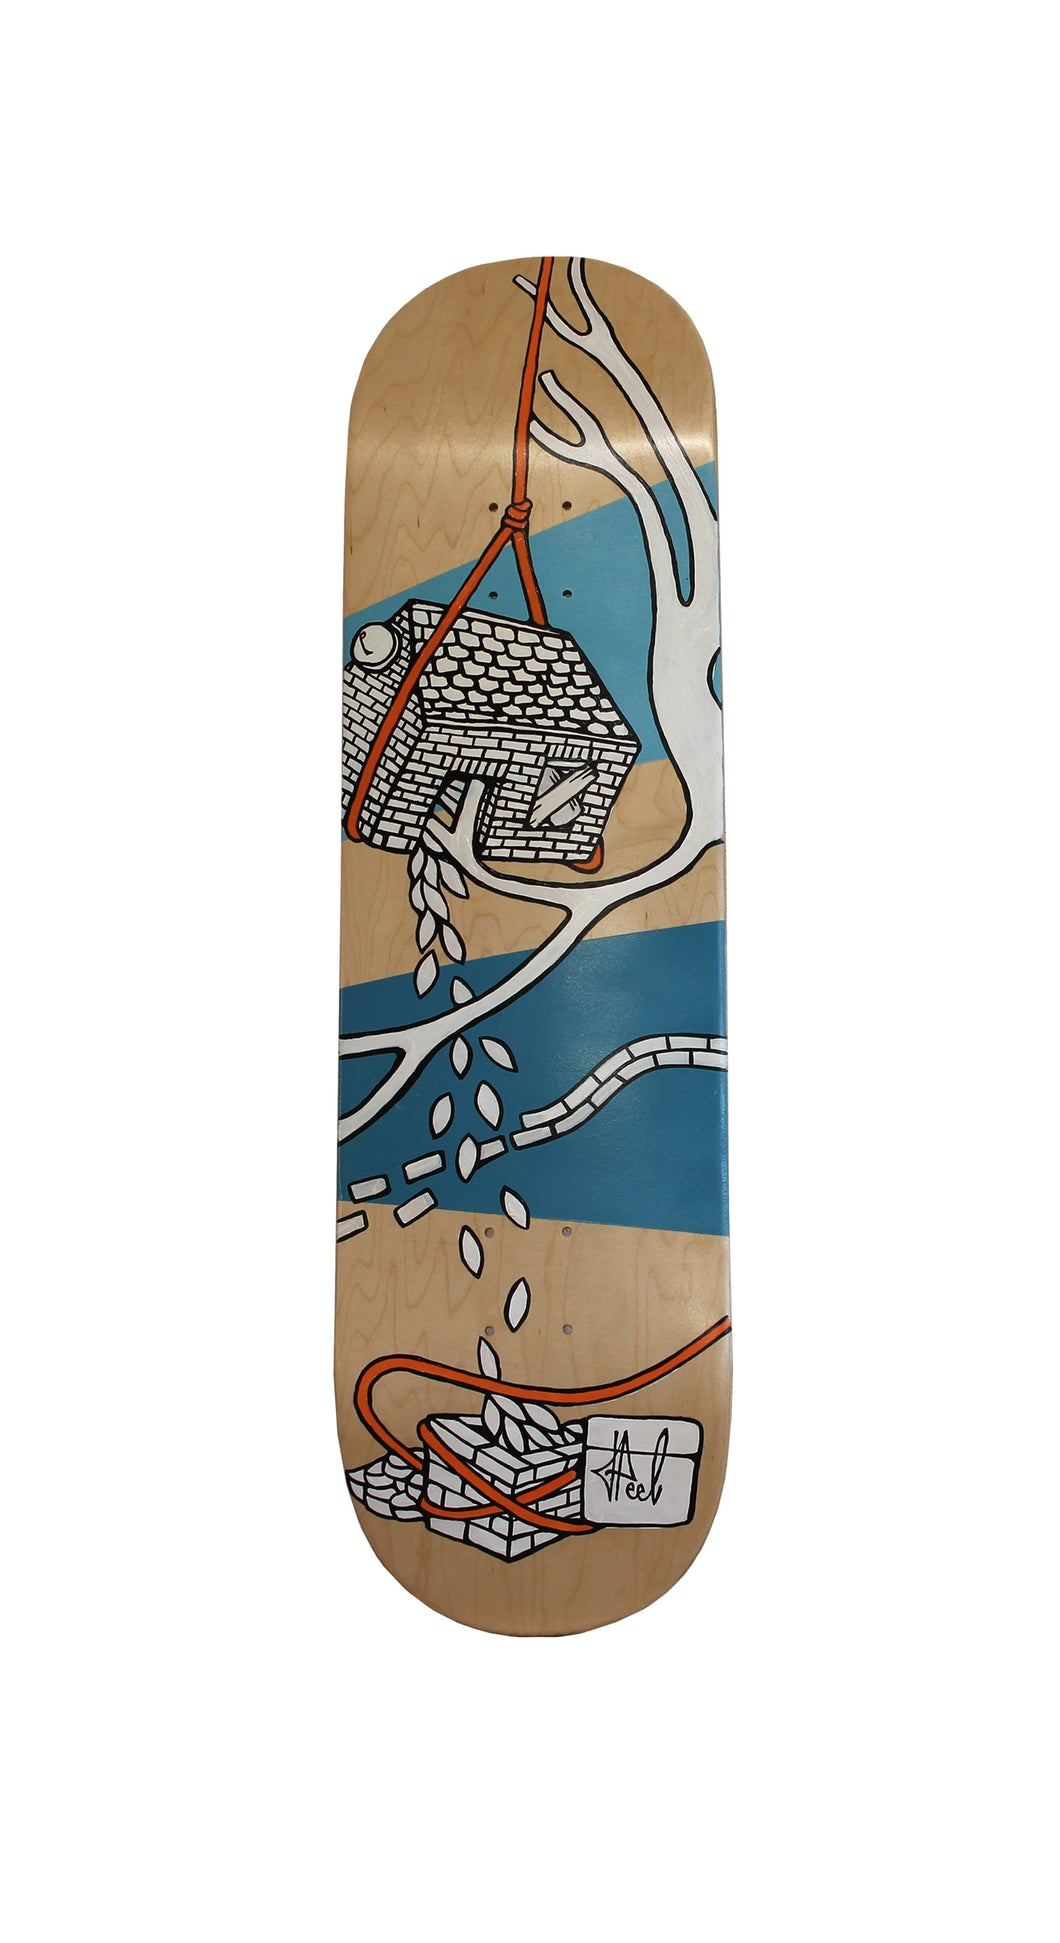 Jo Peel - Skatedeck - House on the Lake - House